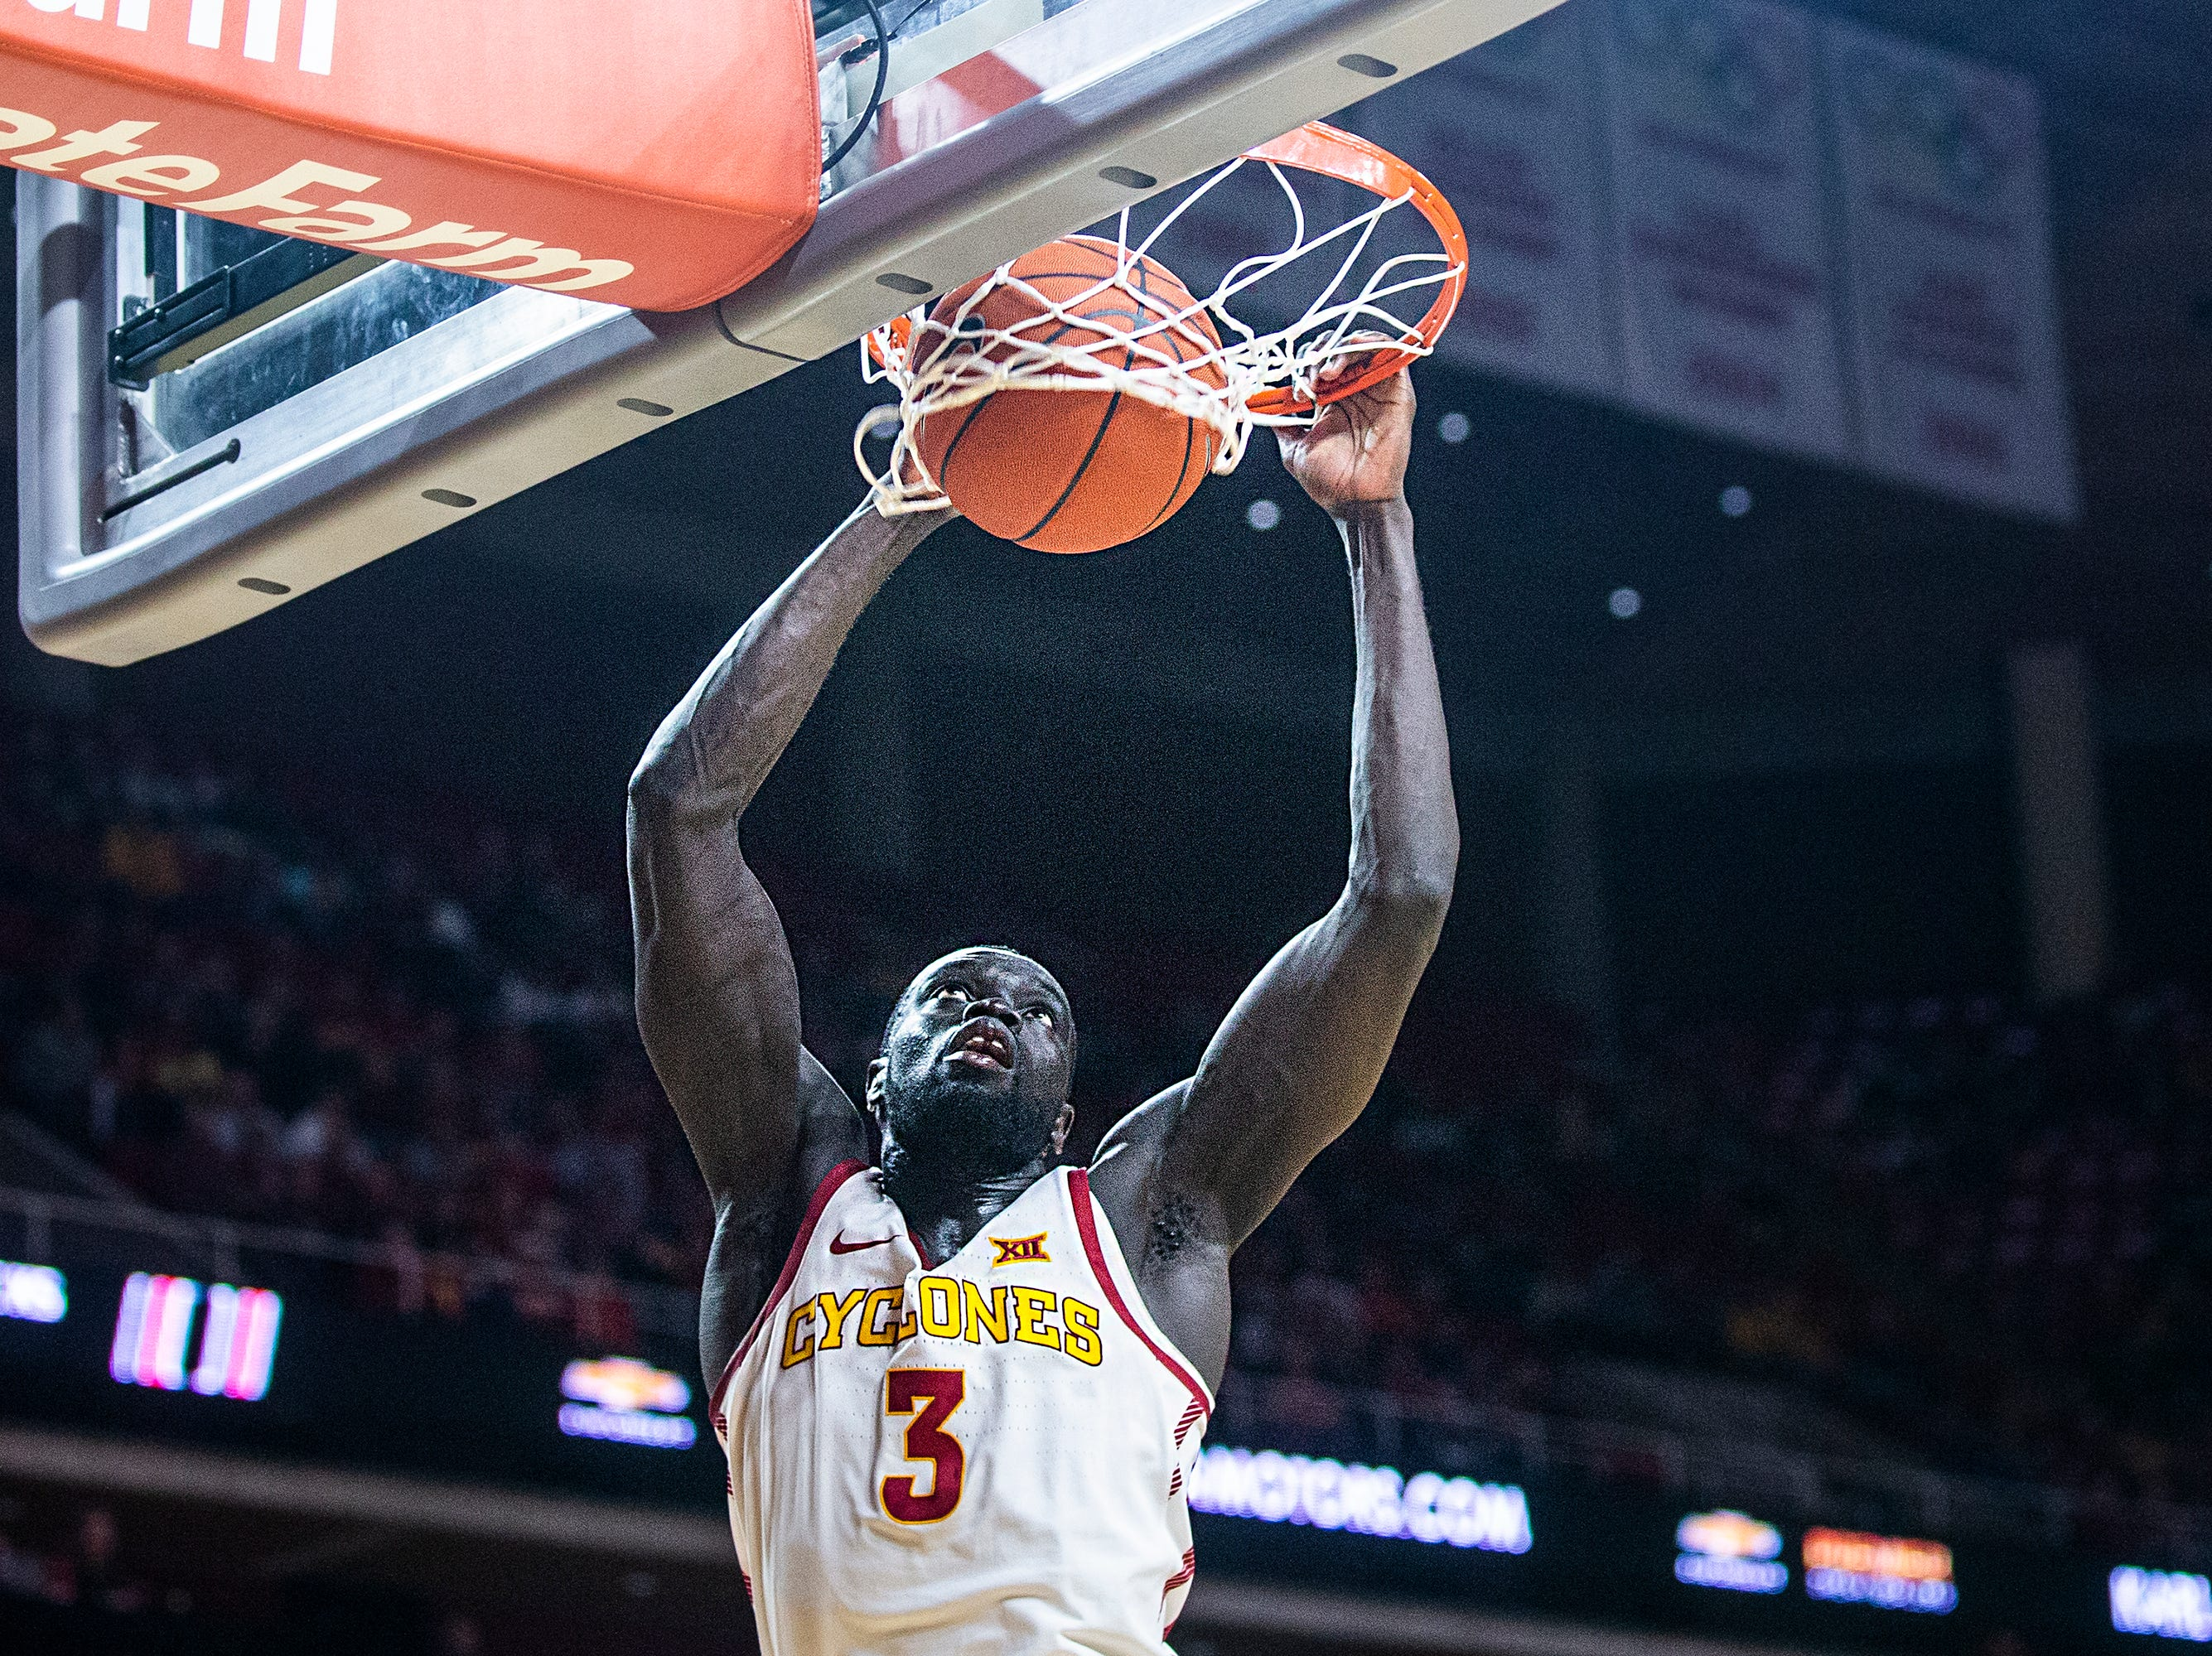 Iowa State's Marial Shayok dunks the ball during the Iowa State men's basketball game against Omaha on Monday, Nov. 26, 2018, at Hilton Coliseum, in Ames.